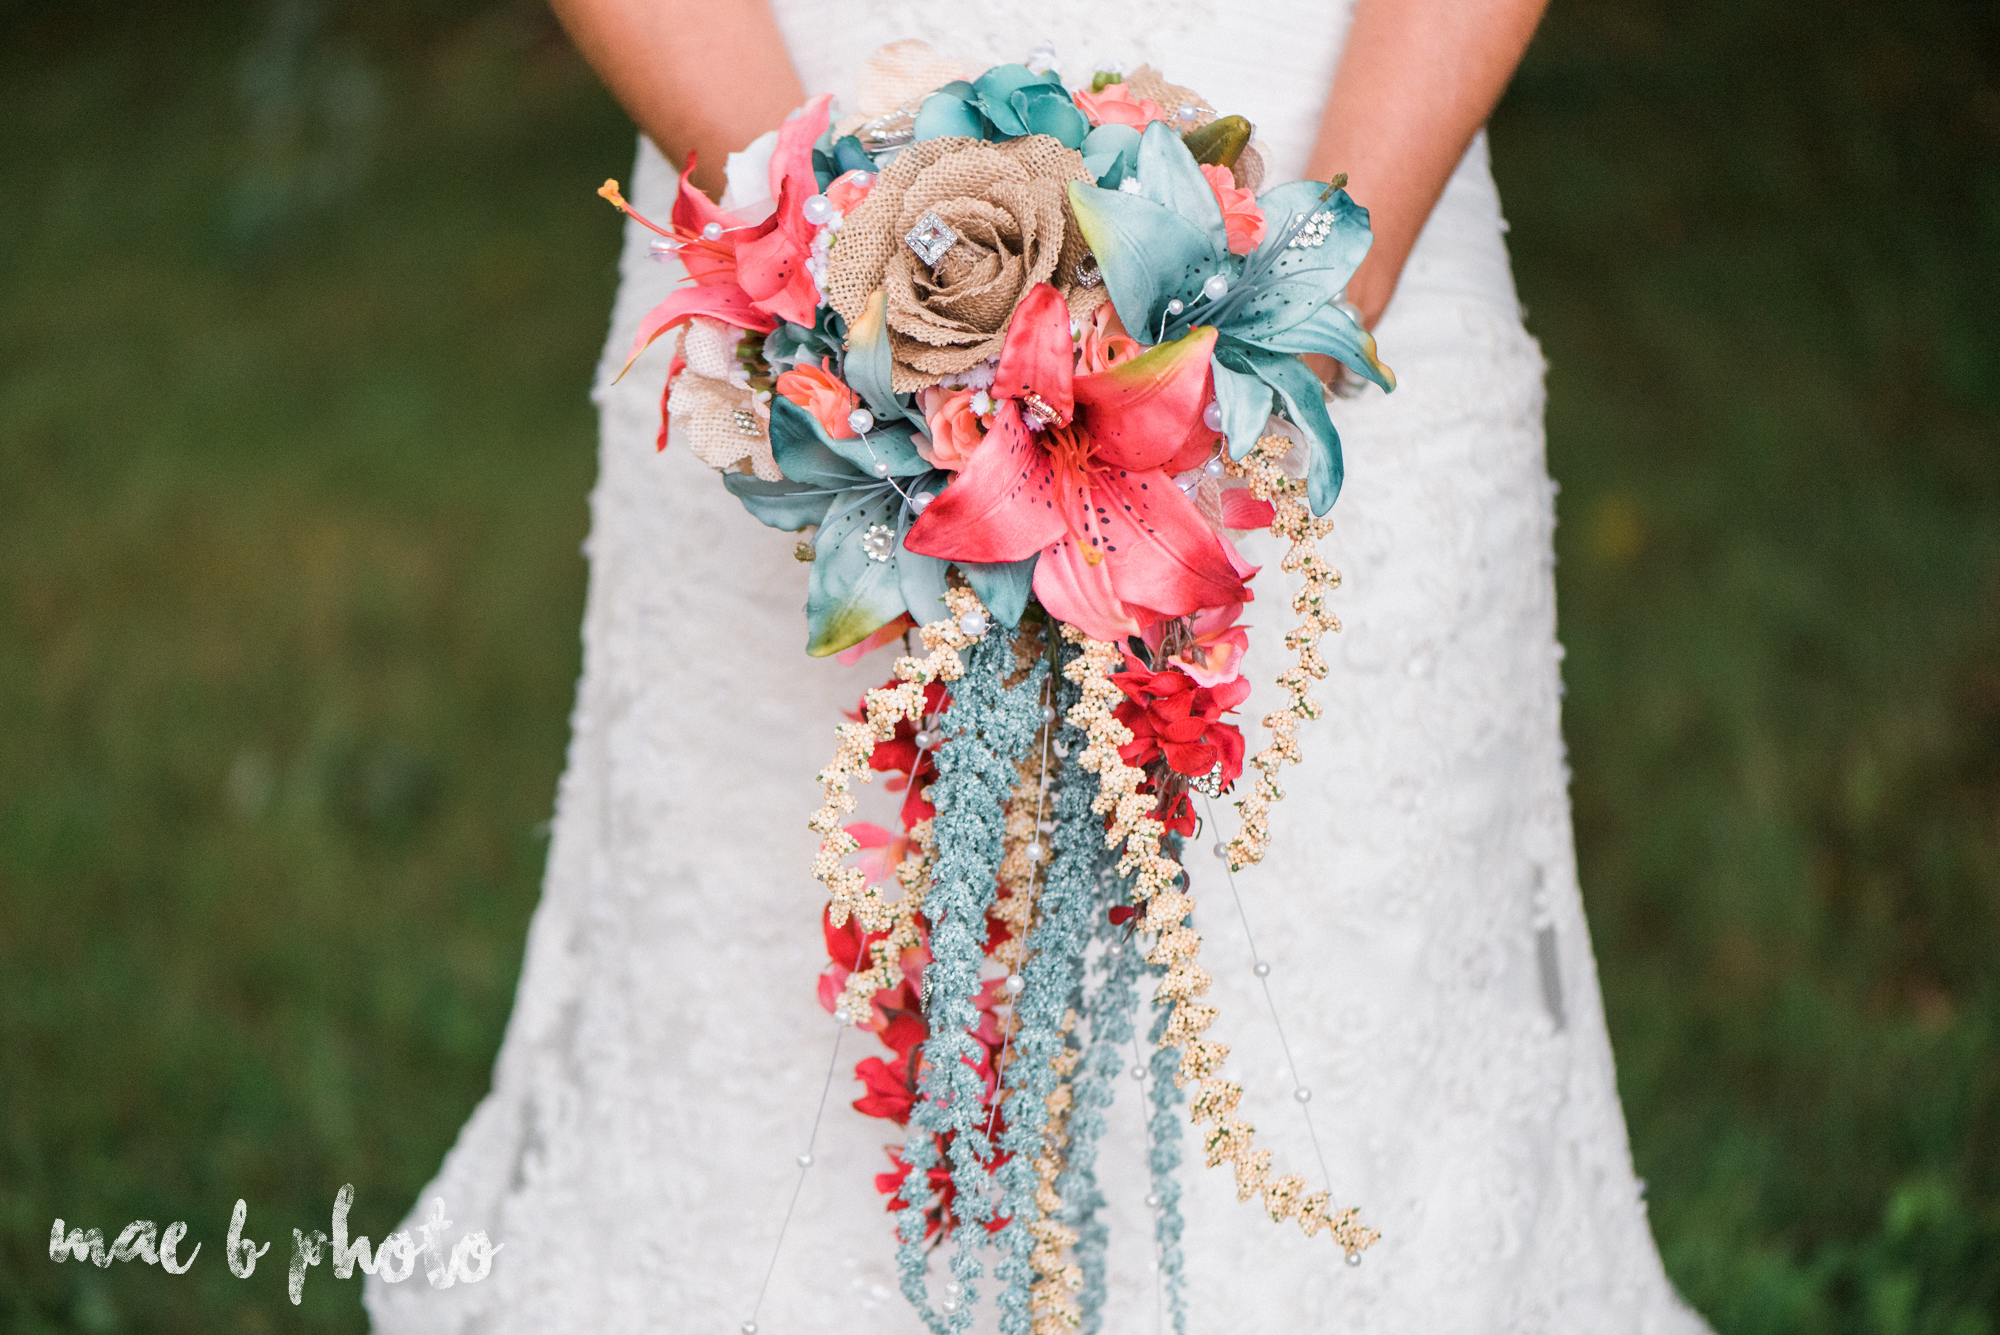 kristy and matt's summer wedding at the embassy in youngstown ohio photographed by youngstown wedding photographer mae b photo-48.jpg